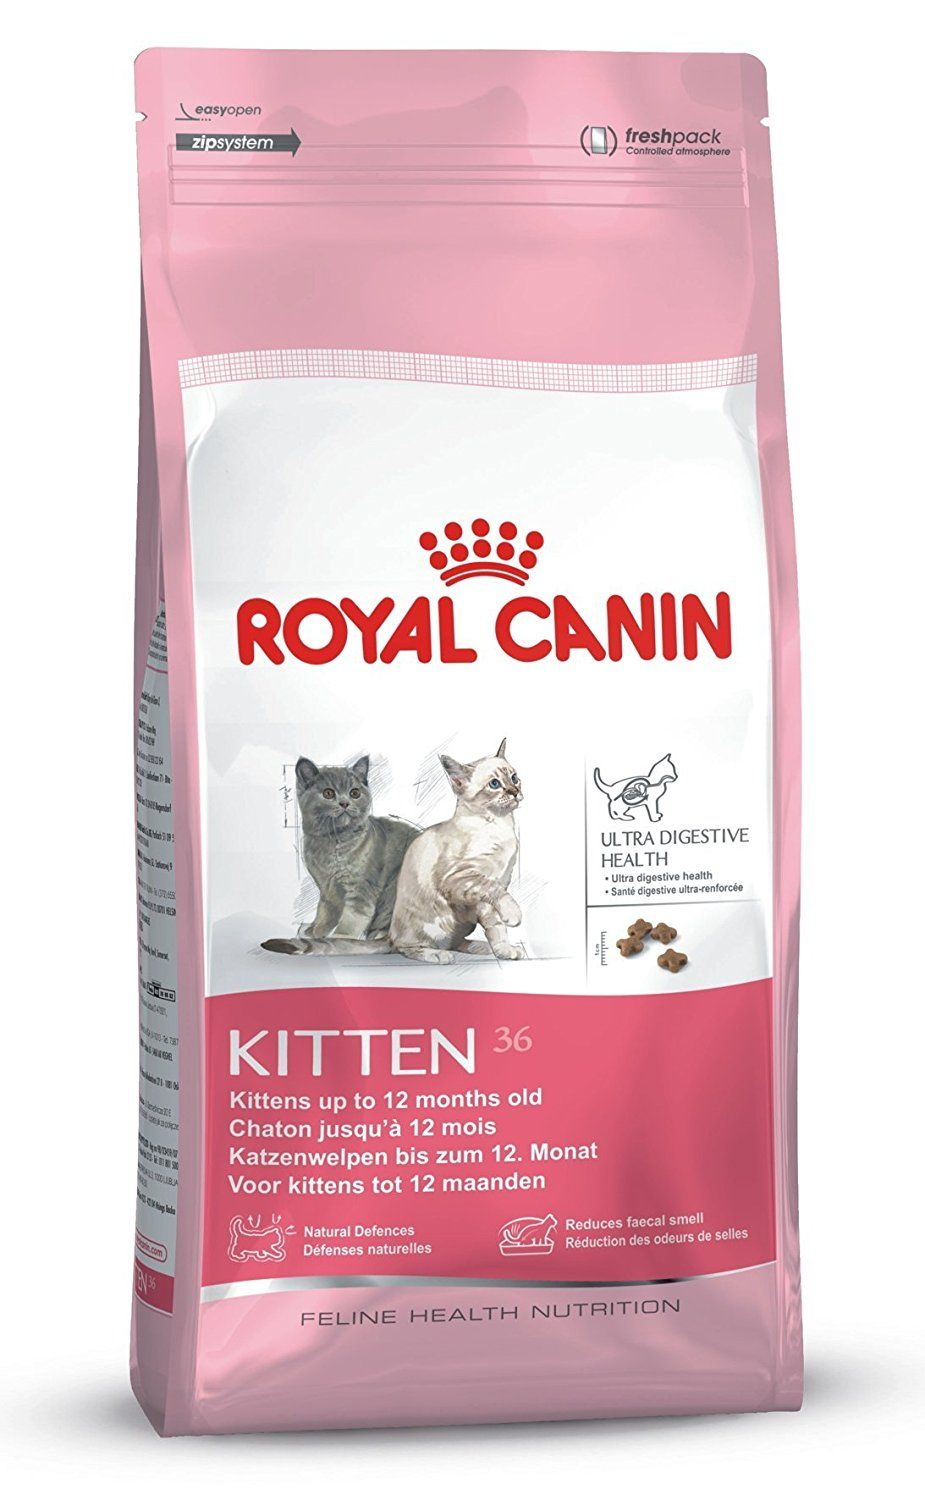 Royal Canin Kitten 36 Dry Cat Food 400 G Save This Wonderfull Item Cat Food Kitten Food Dry Cat Food Online Pet Supplies